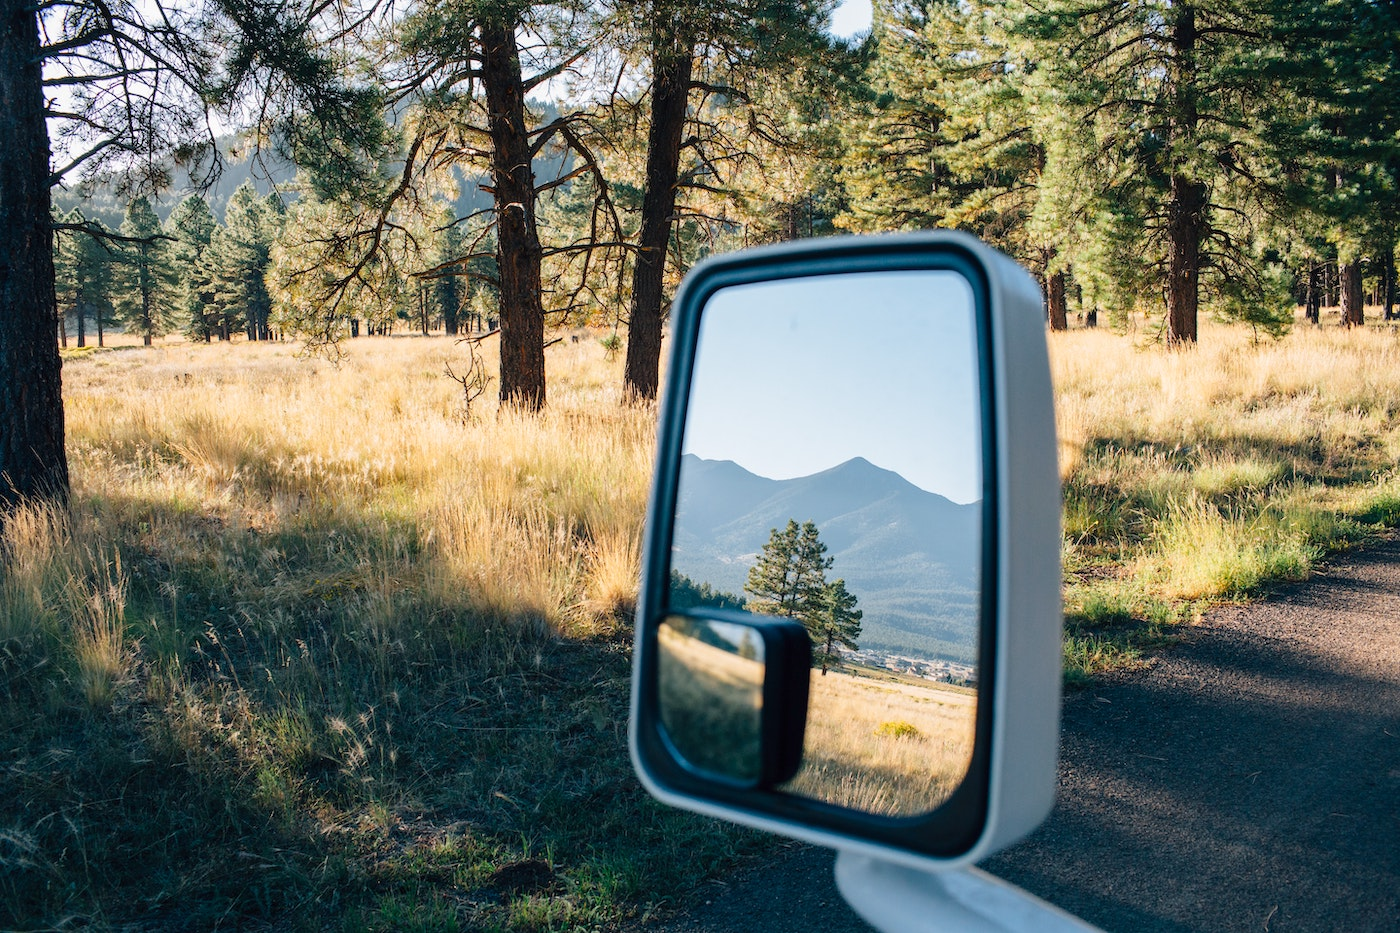 Side view mirror with reflection of forest and mountains